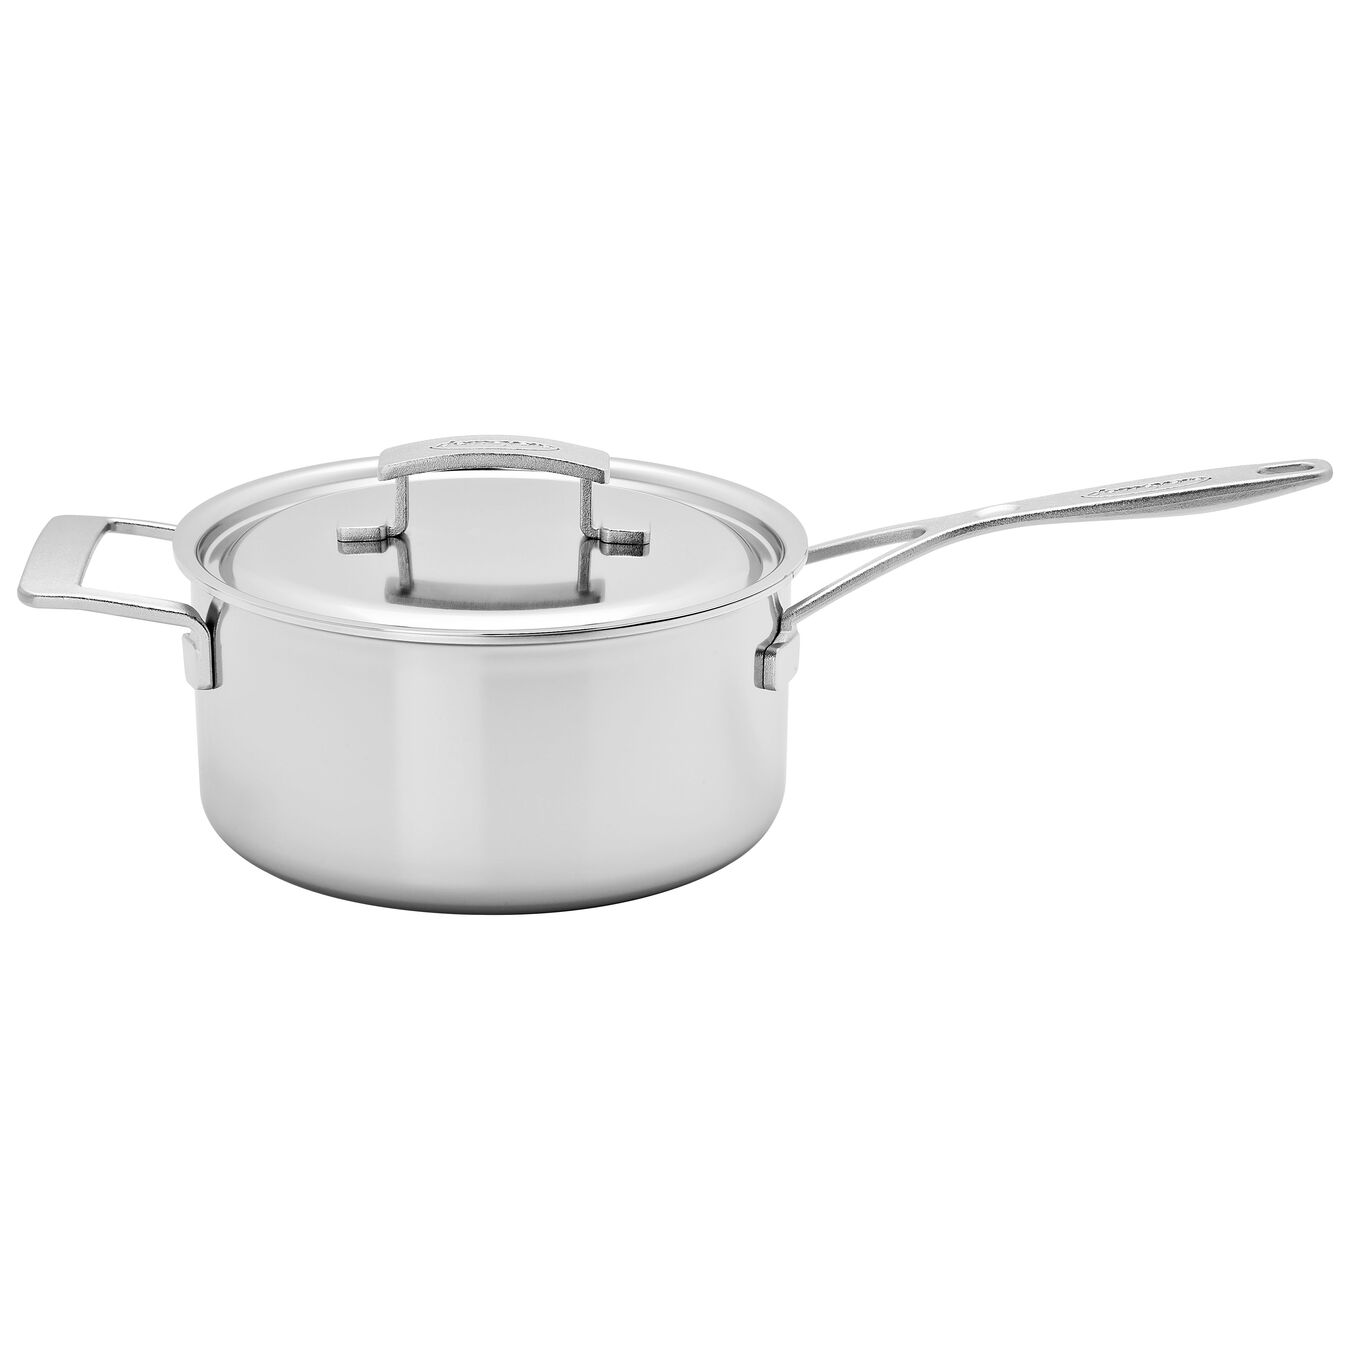 4 l 18/10 Stainless Steel round Casserole with lid, Silver,,large 2